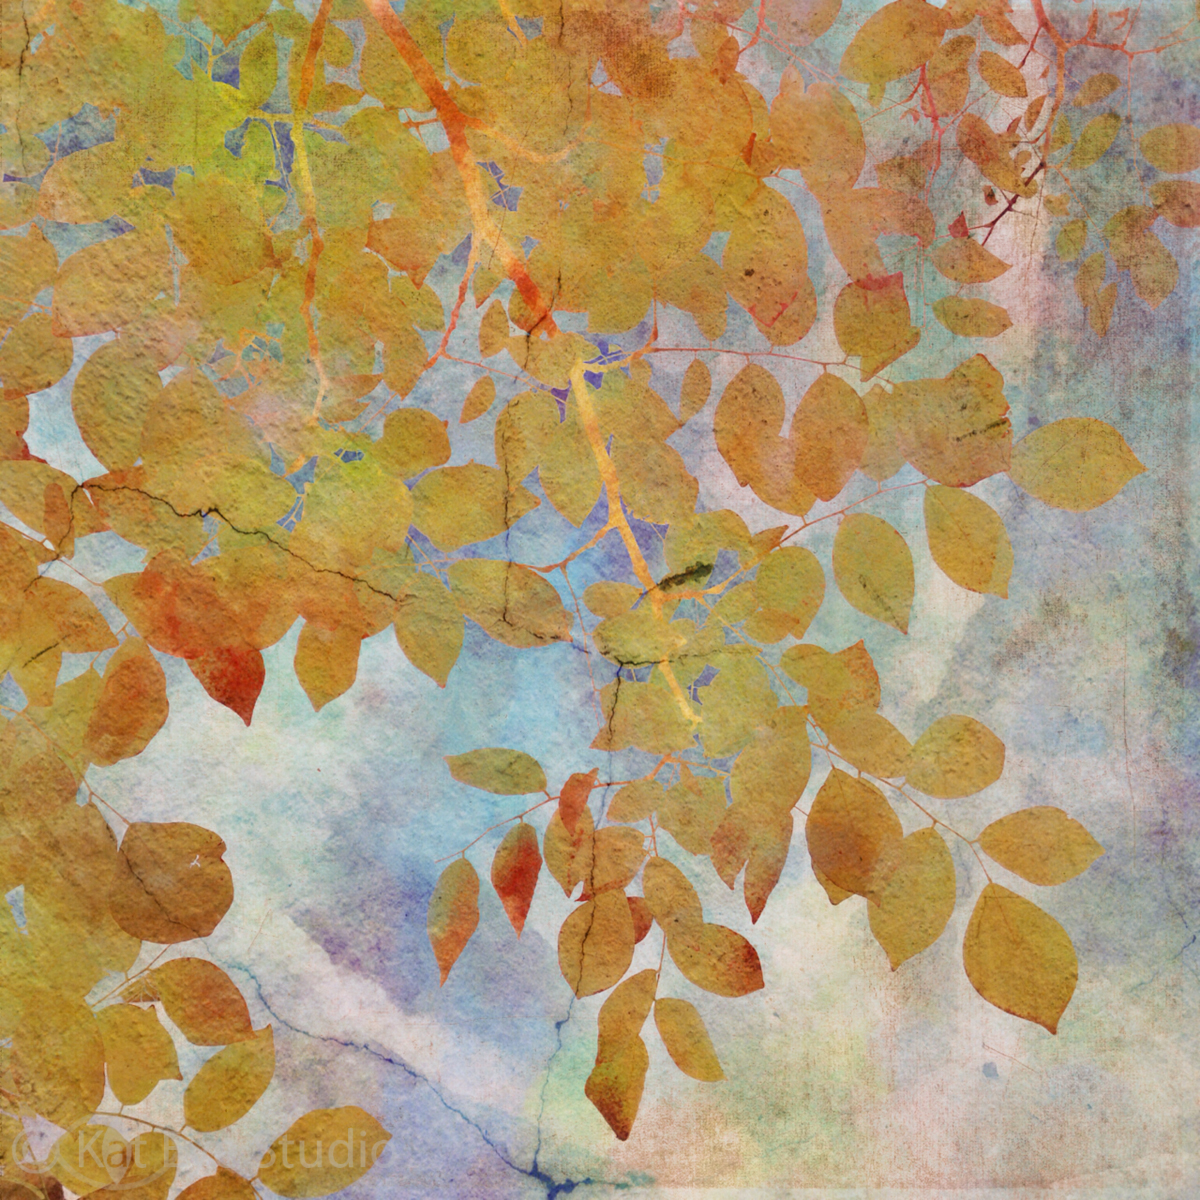 Holly-Clark-Viewfinders-Kat-Sloma--Layered-Autumn